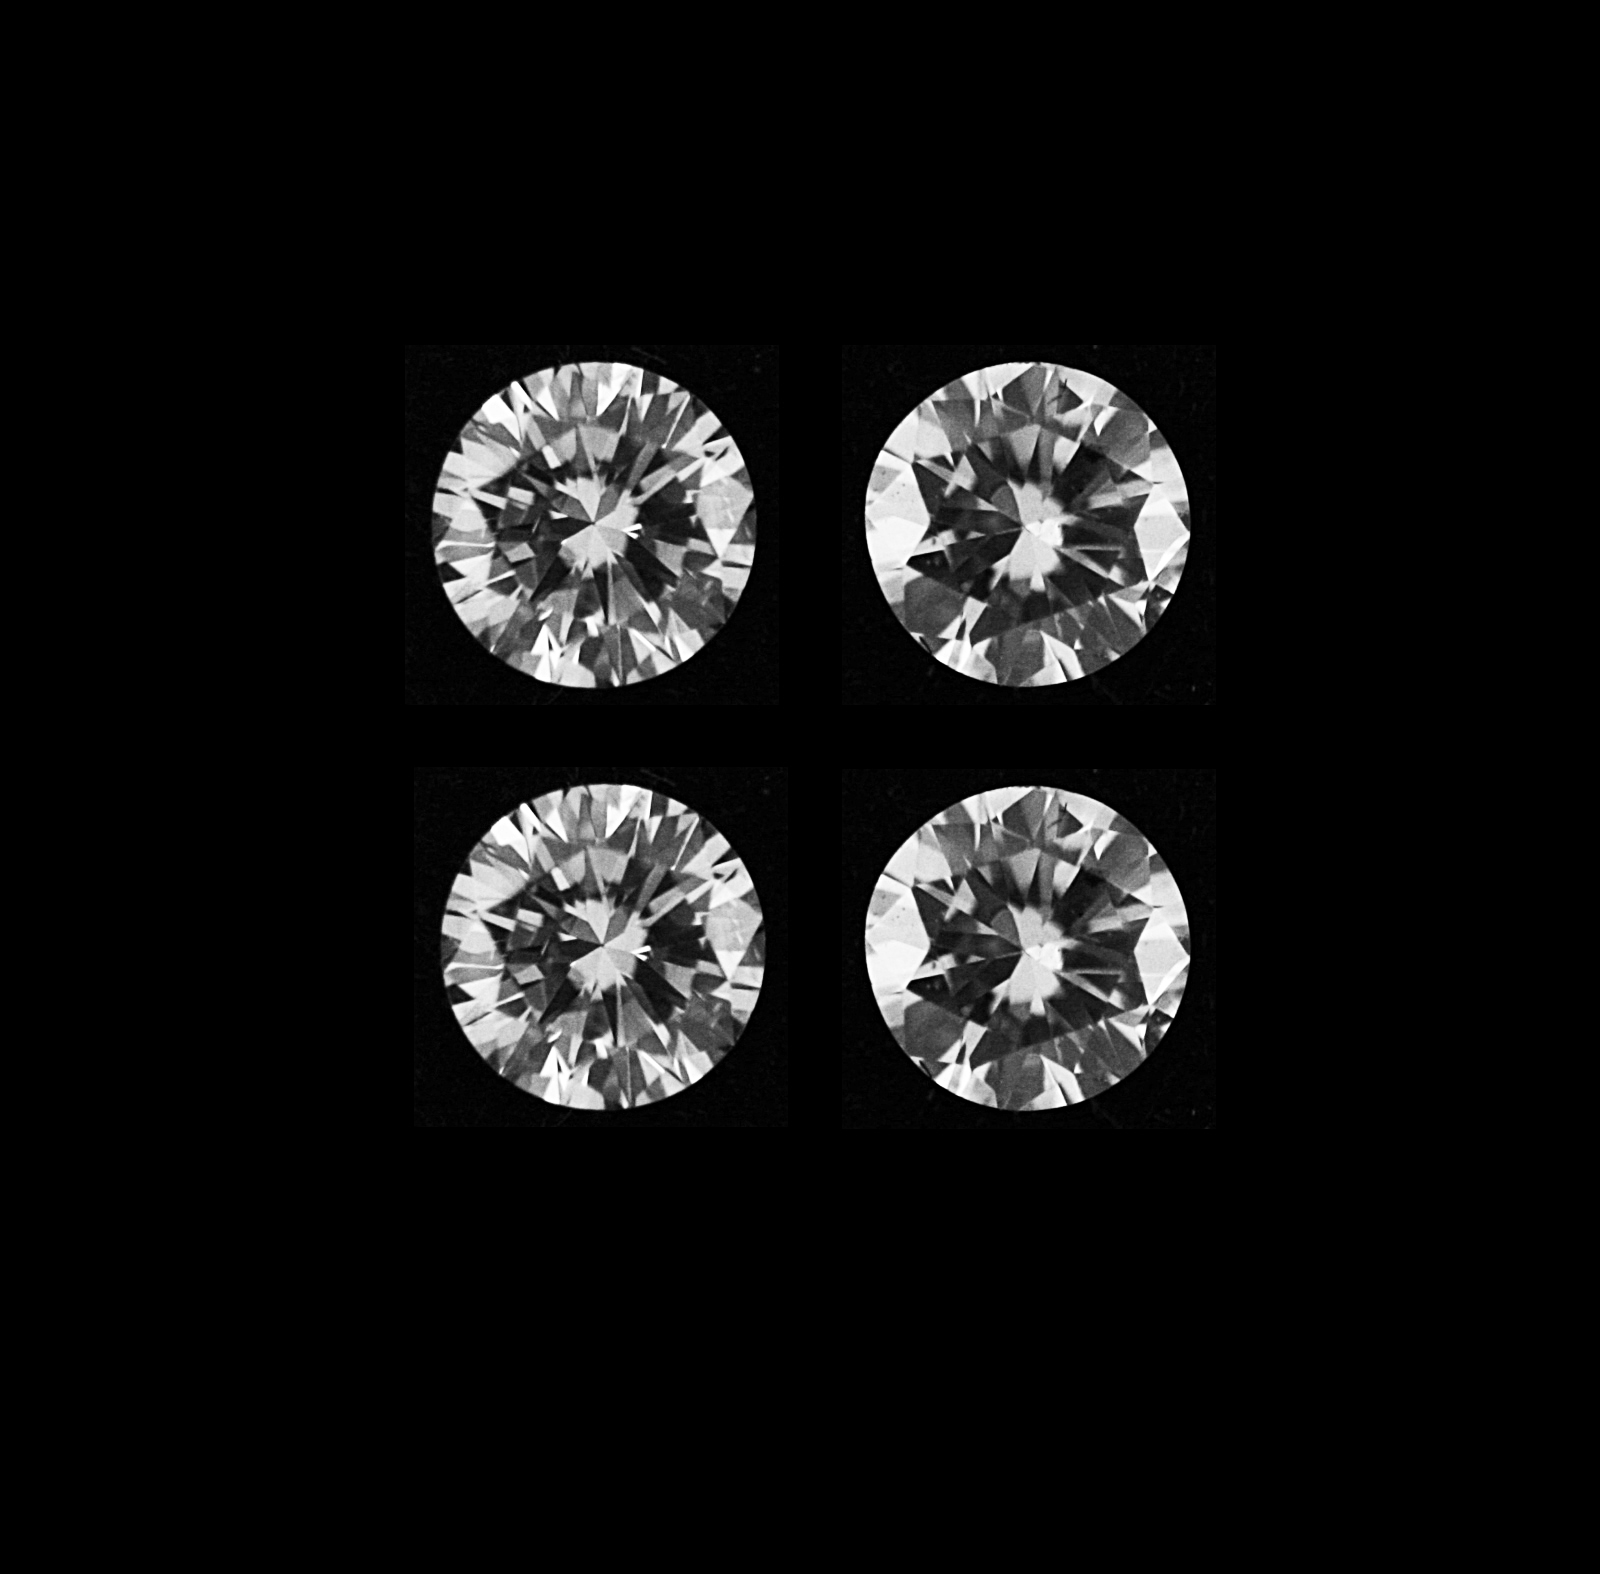 100/% Natural White Diamond Loose 0.20CT 4//Pcs Round Shape With Certificate